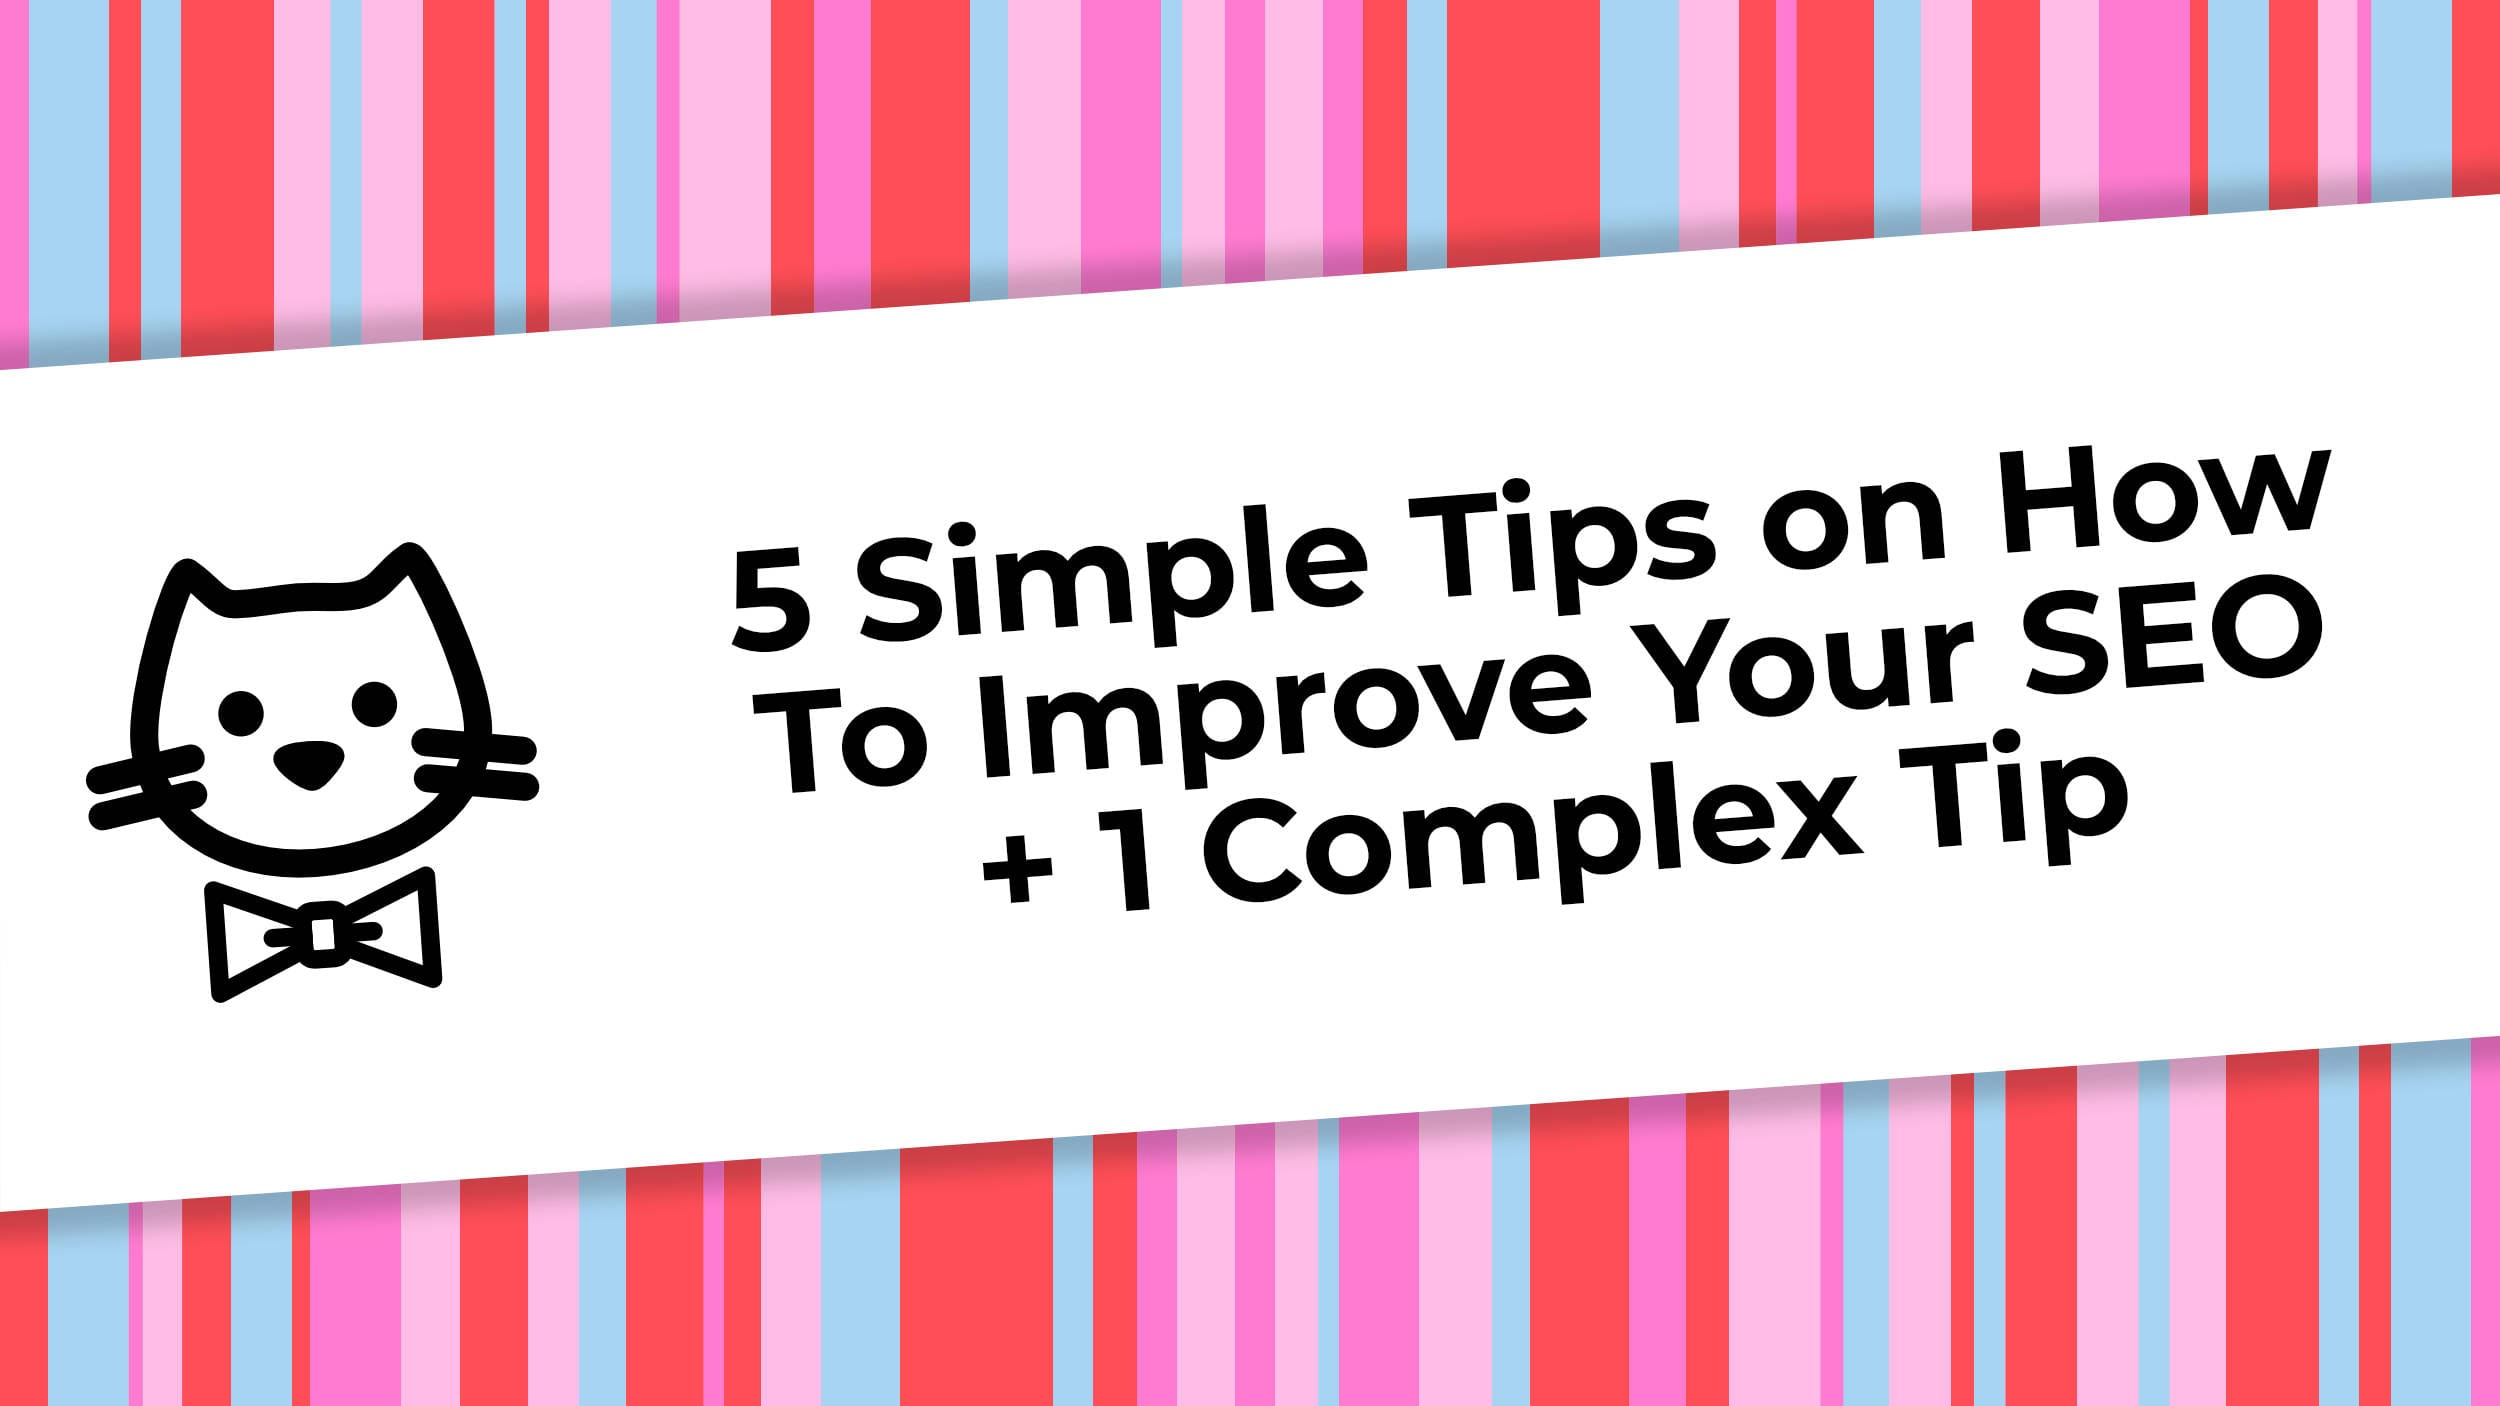 5 Simple Tips Top Improve Your SEO + 1 Complex Tip.jpg